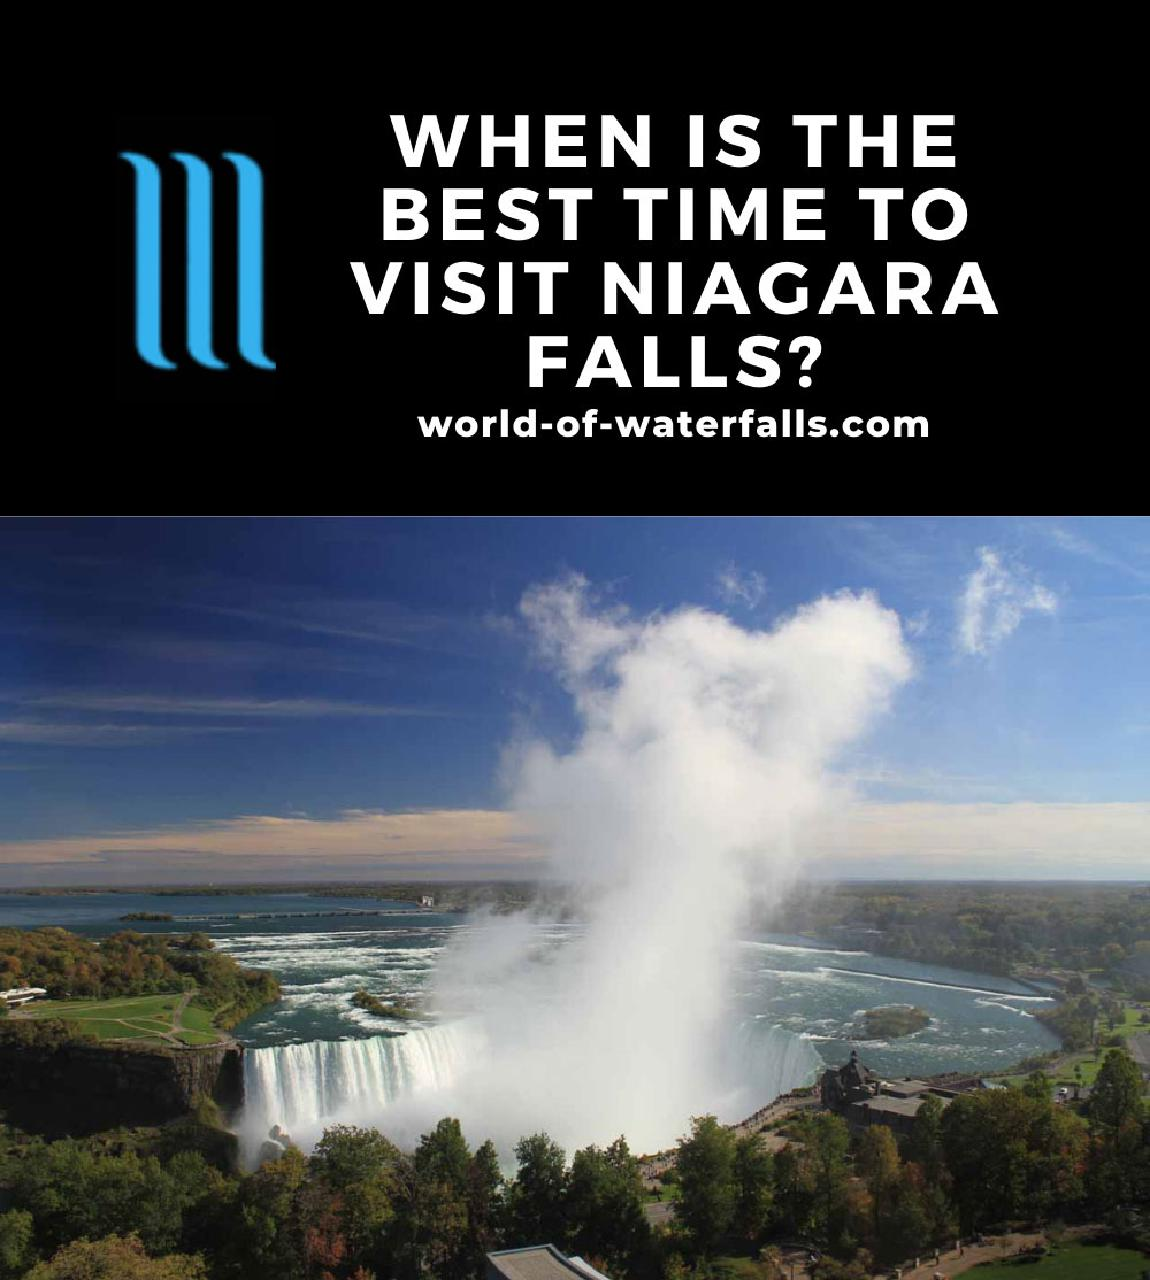 When is the Best Time to Visit Niagara Falls